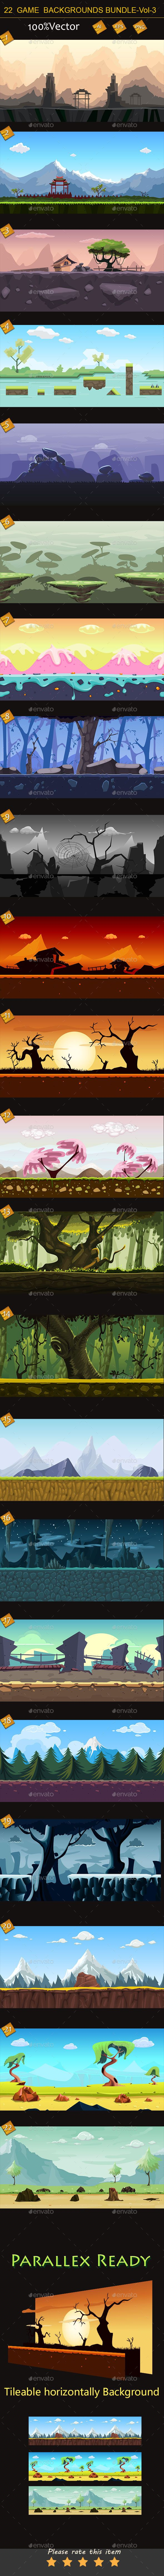 22 Game Backgrounds Bundle Volume 3 - Backgrounds Game Assets